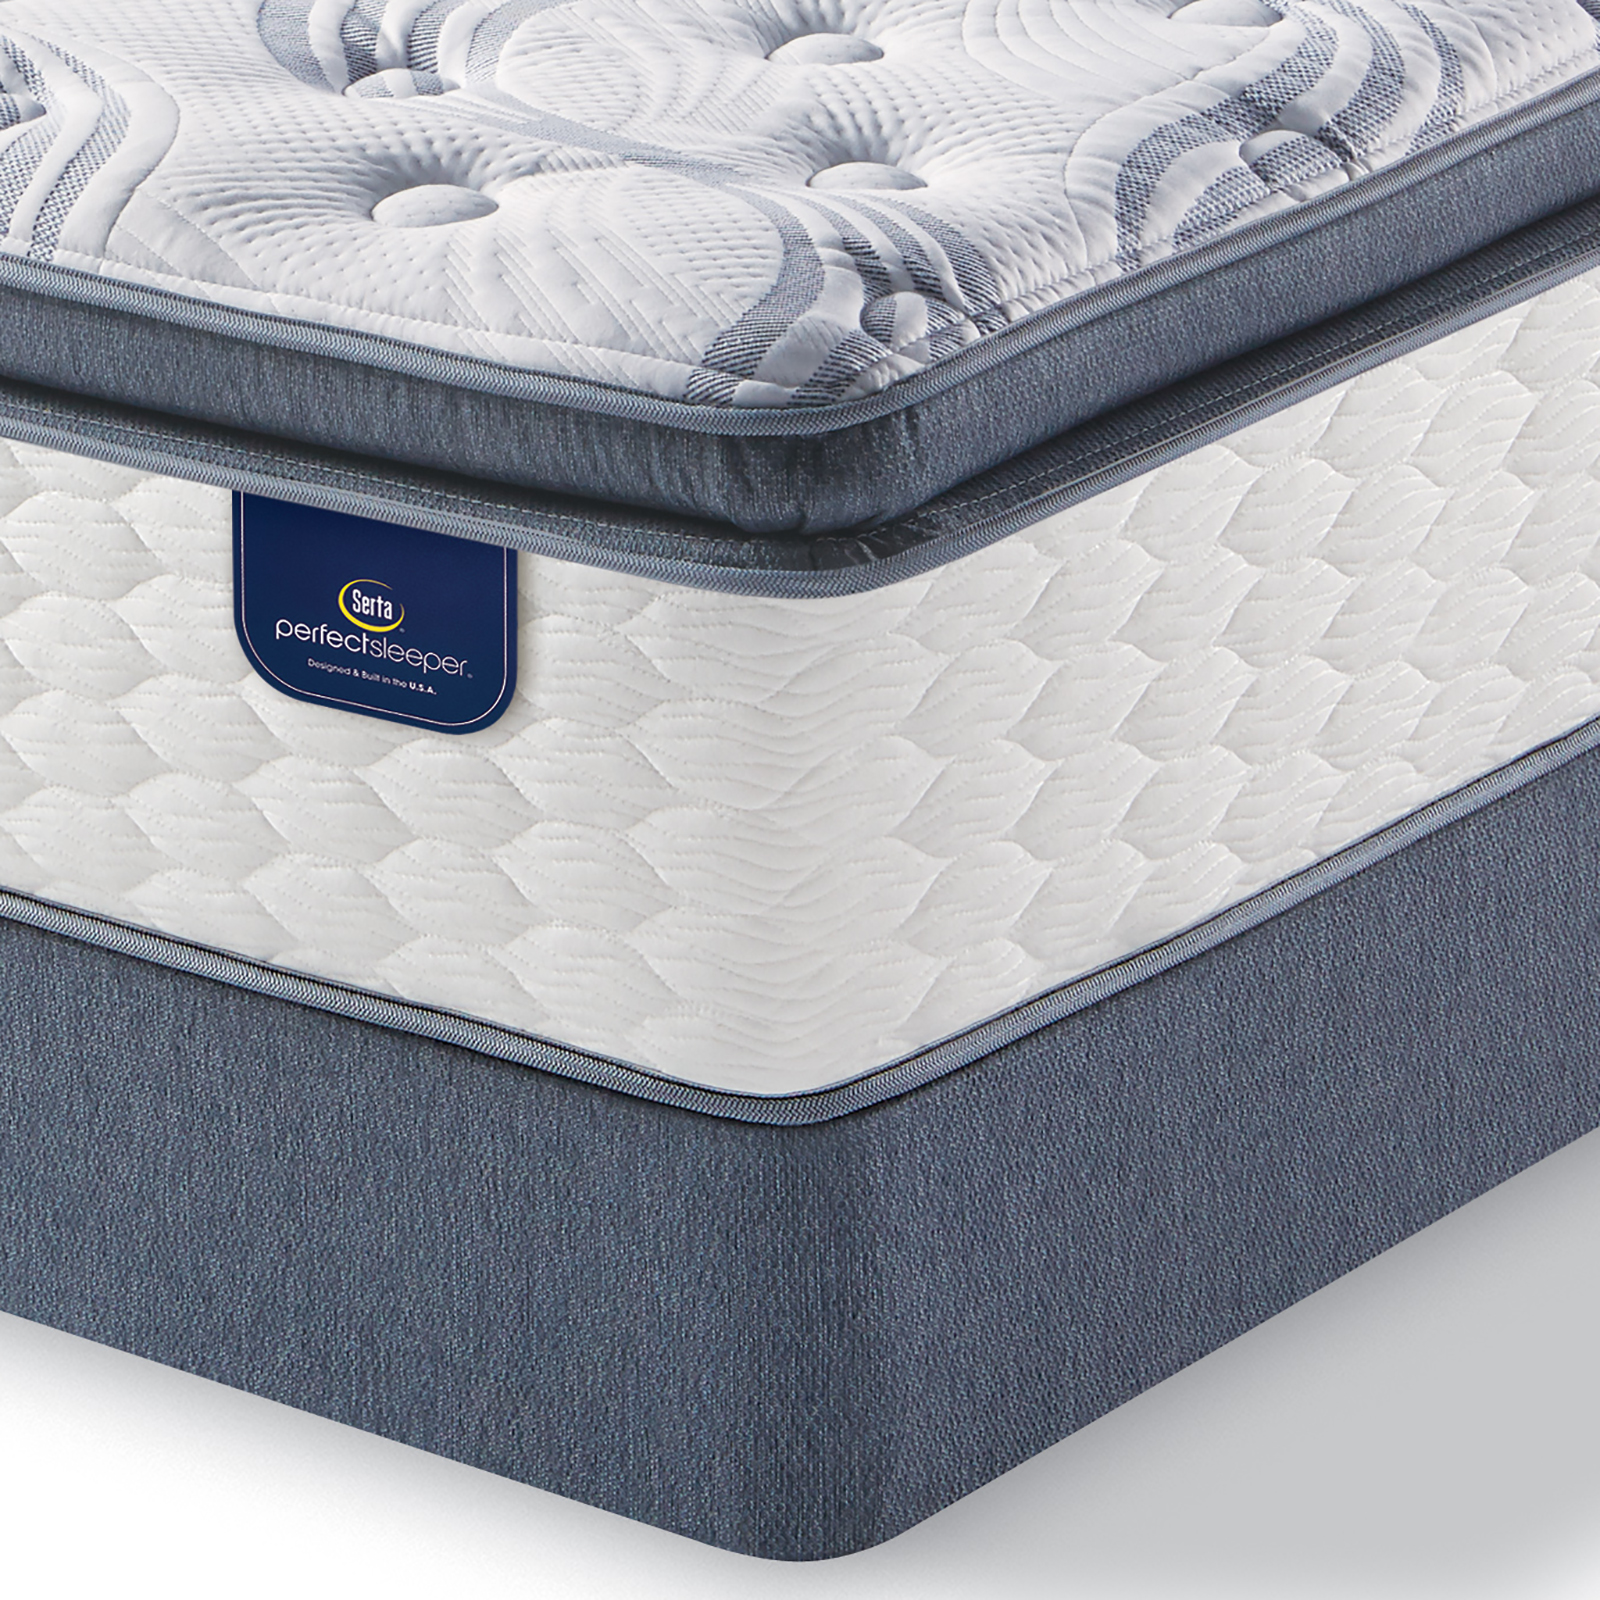 Serta Perfect Sleeper Teddington Plush King Mattress